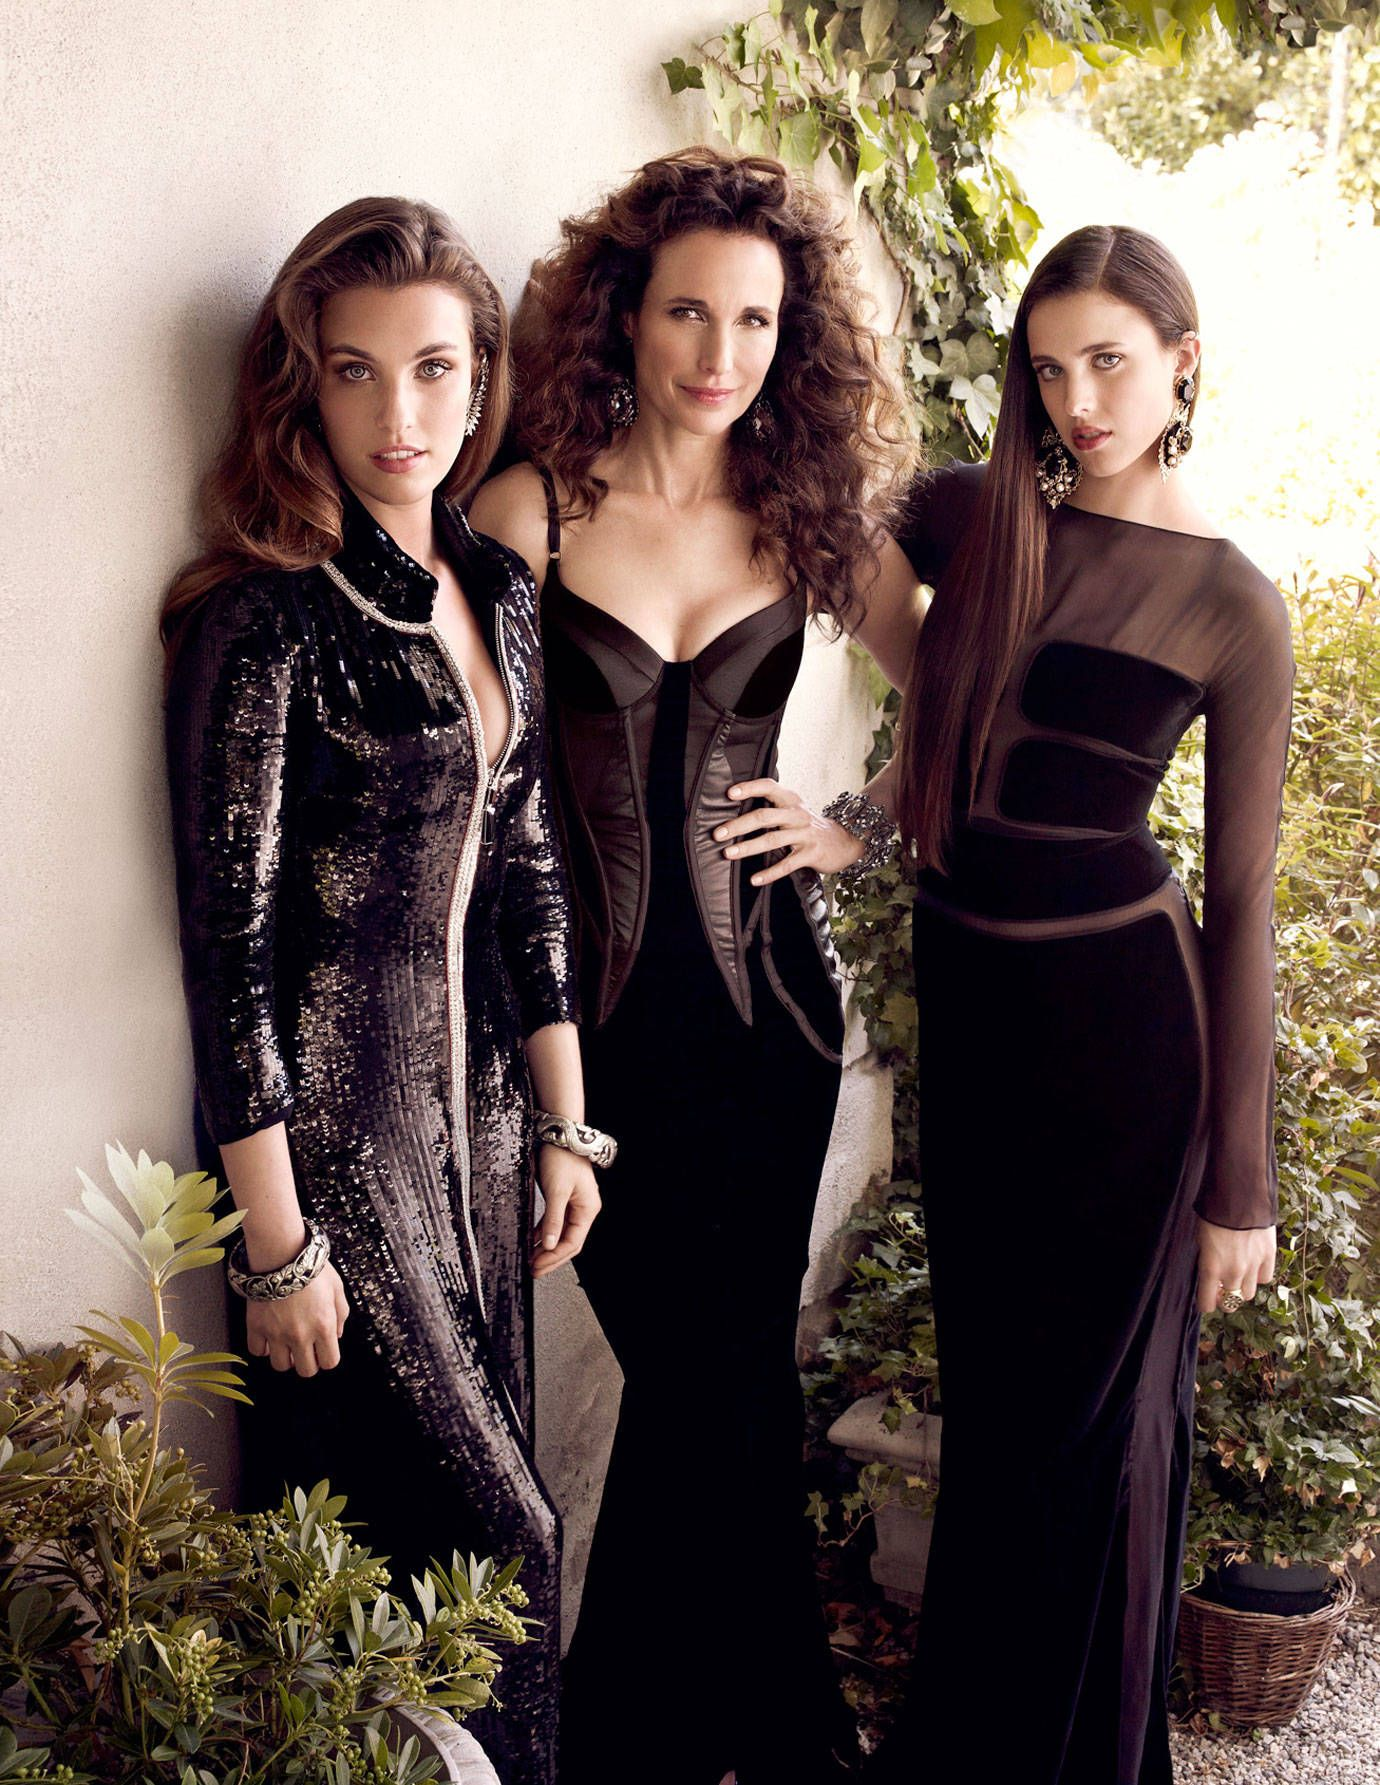 Andie Macdowell Bra Size andie macdowell daughters rainey and margaret qualley